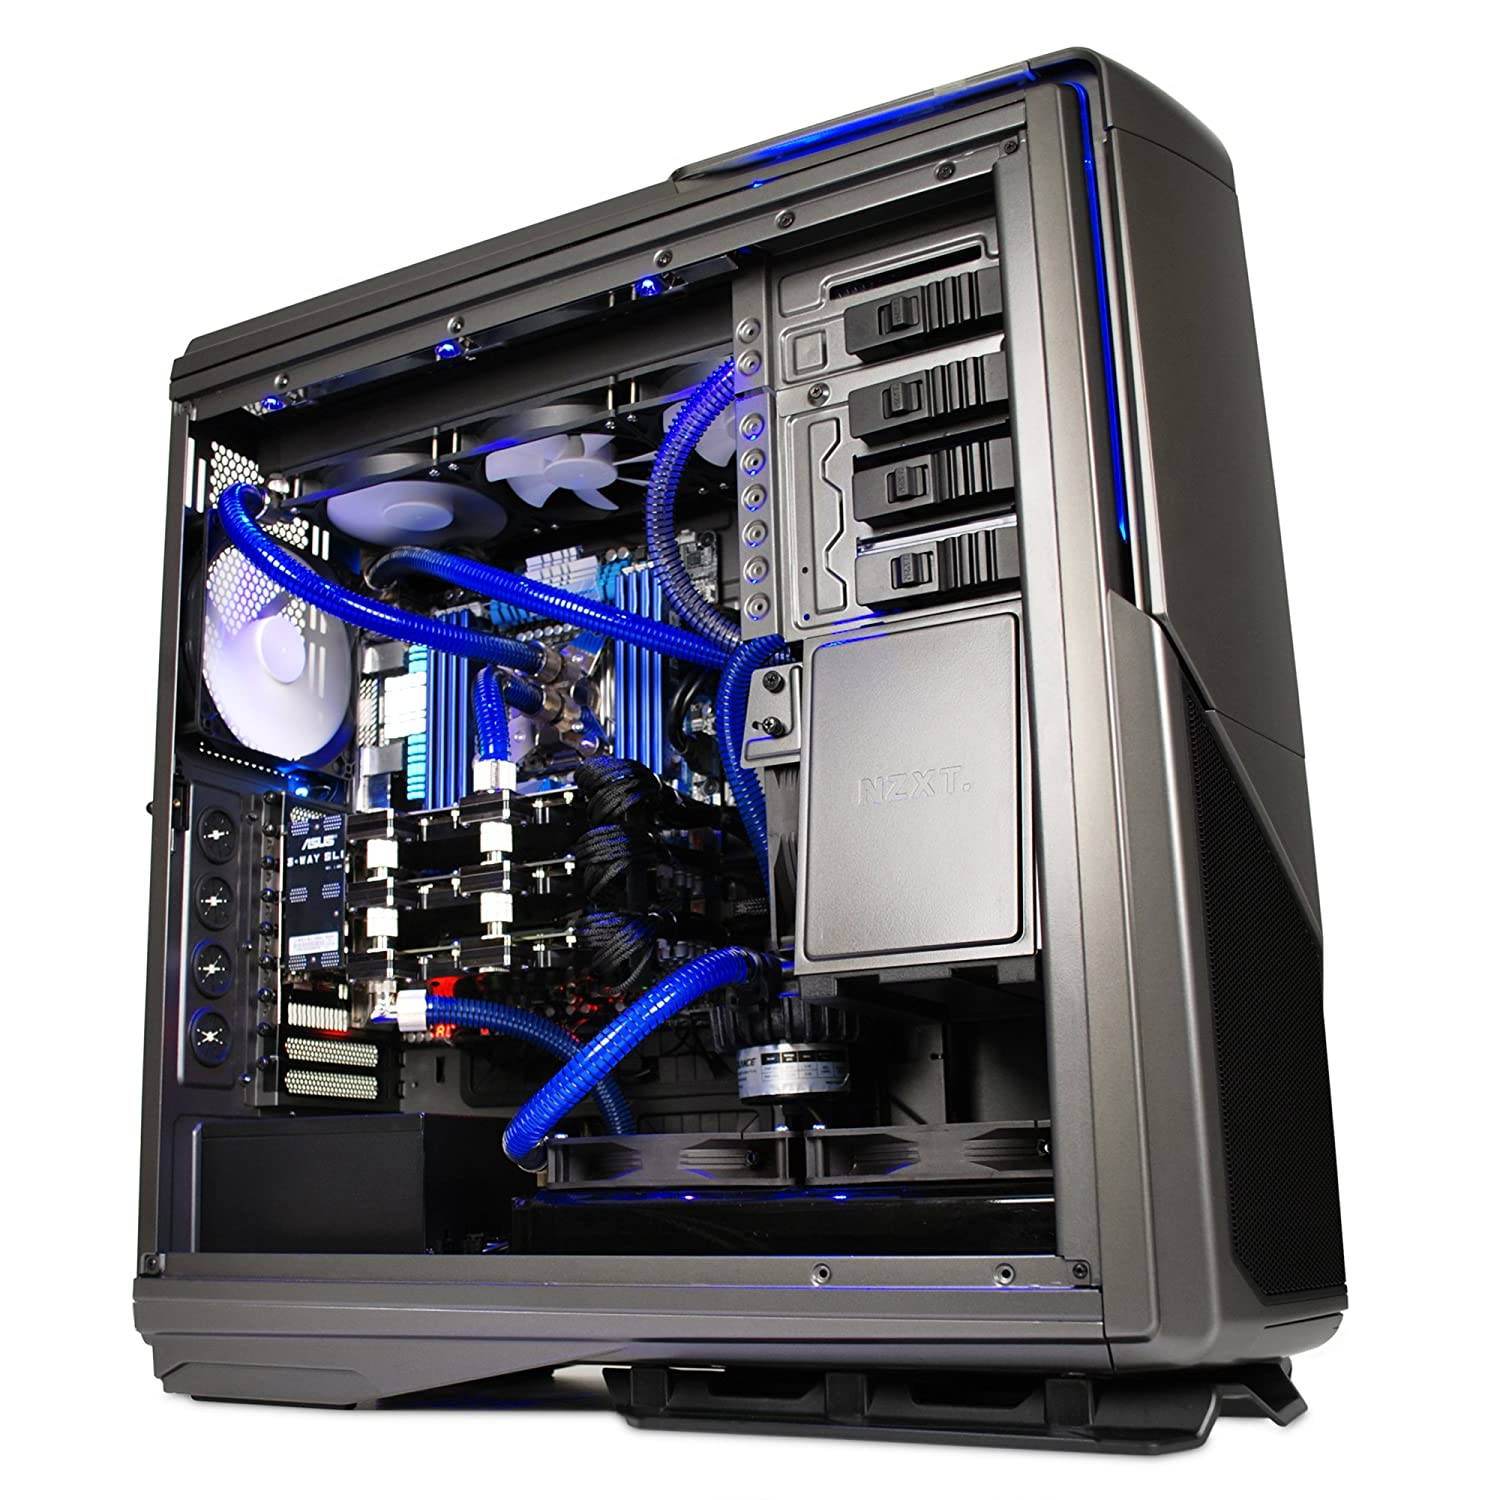 Amazon.in: Buy NZXT PHANTOM 820 No Power Supply ATX Full Tower Case  (Gunmetal) Online at Low Prices in India | Nzxt Reviews & Ratings